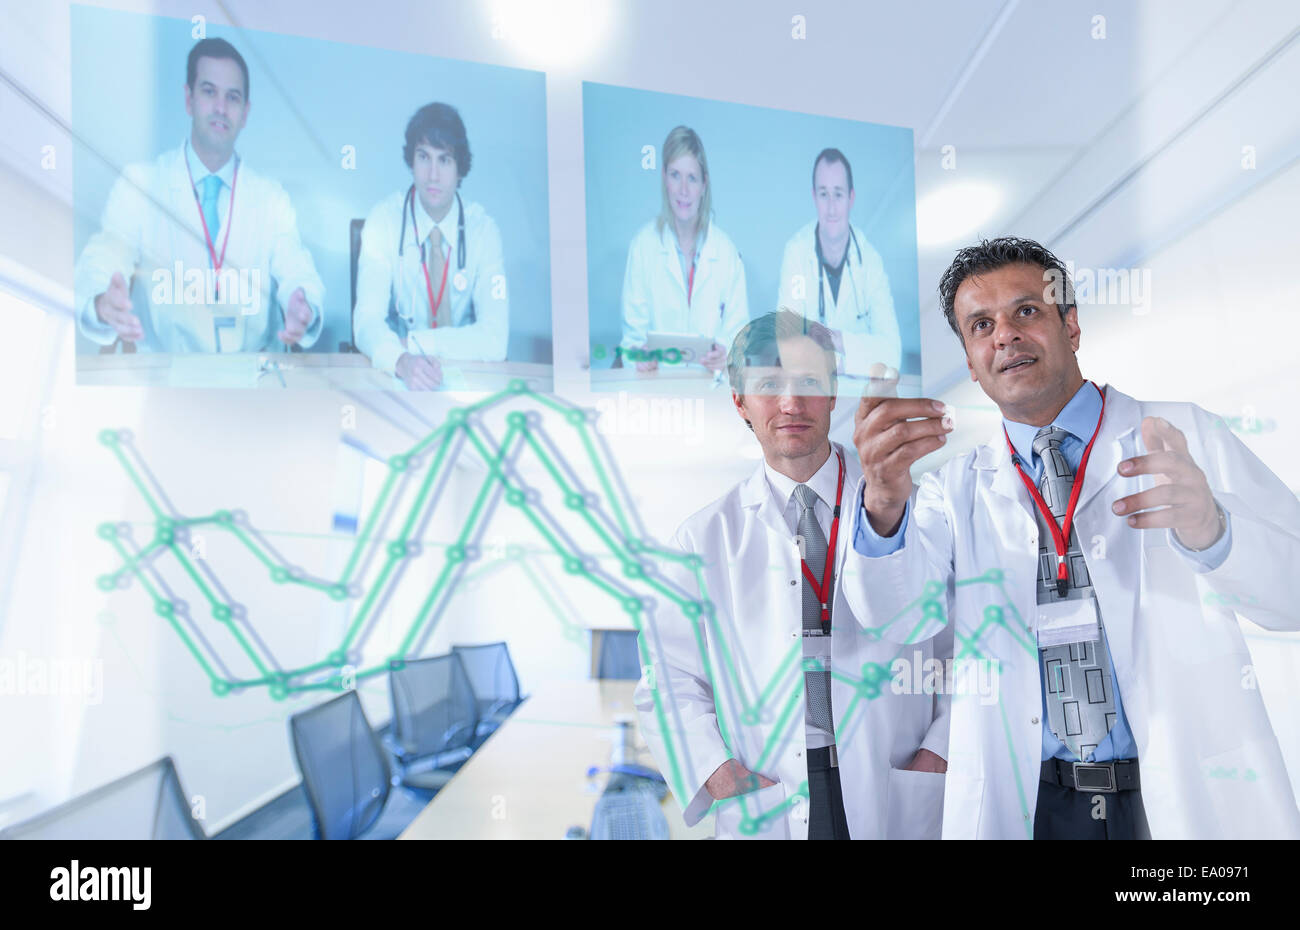 Medical specialists discussing results through video conference on futuristic display - Stock Image